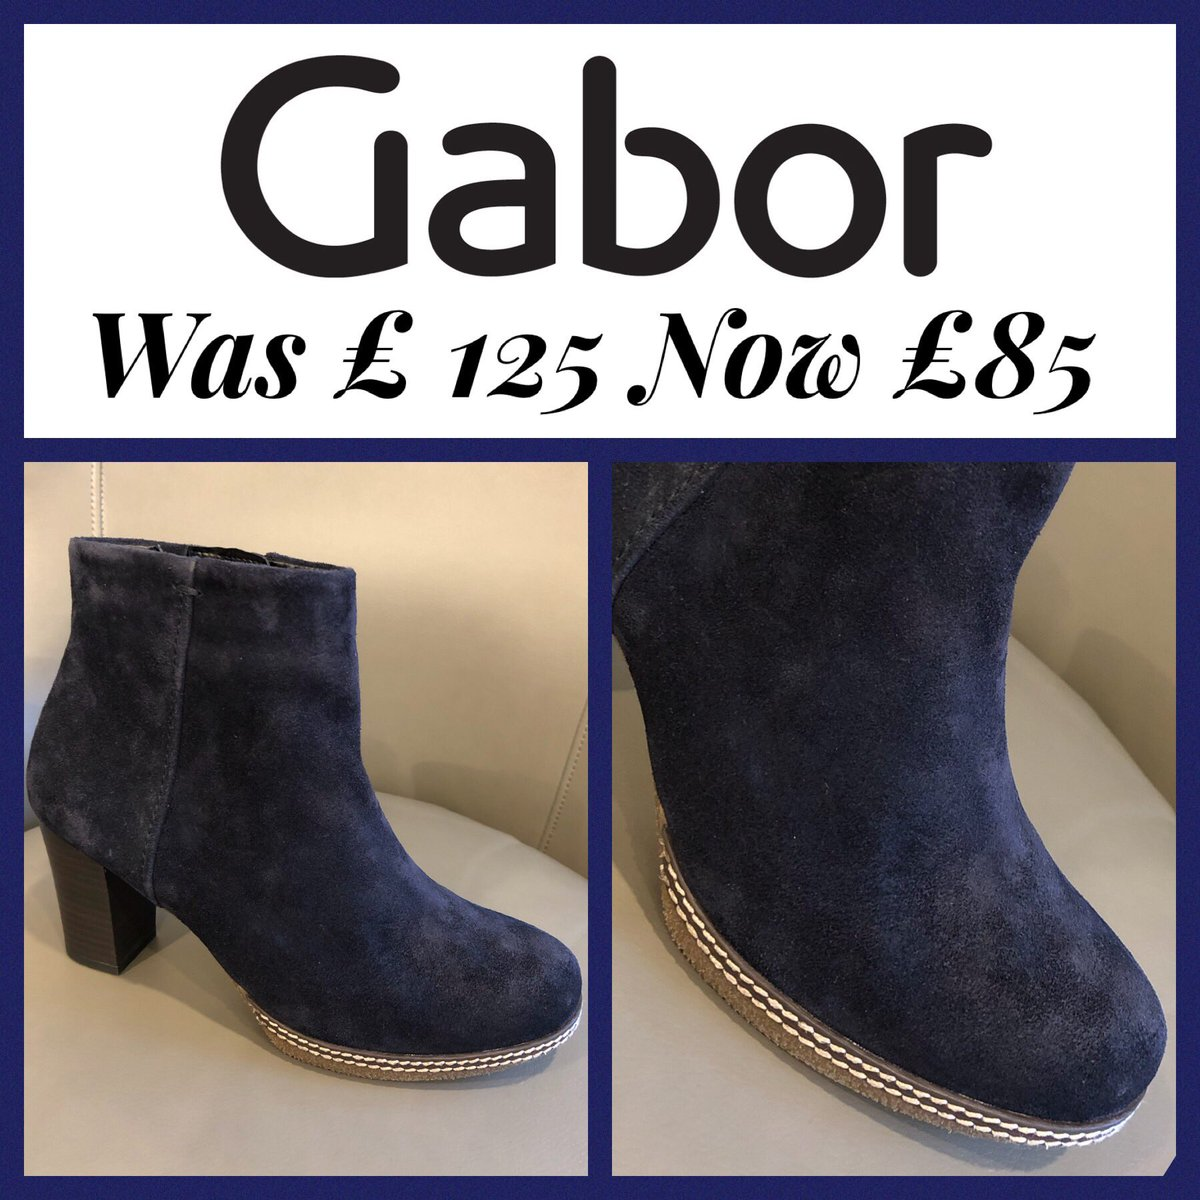 gabor shoes comfort hashtag on Twitter